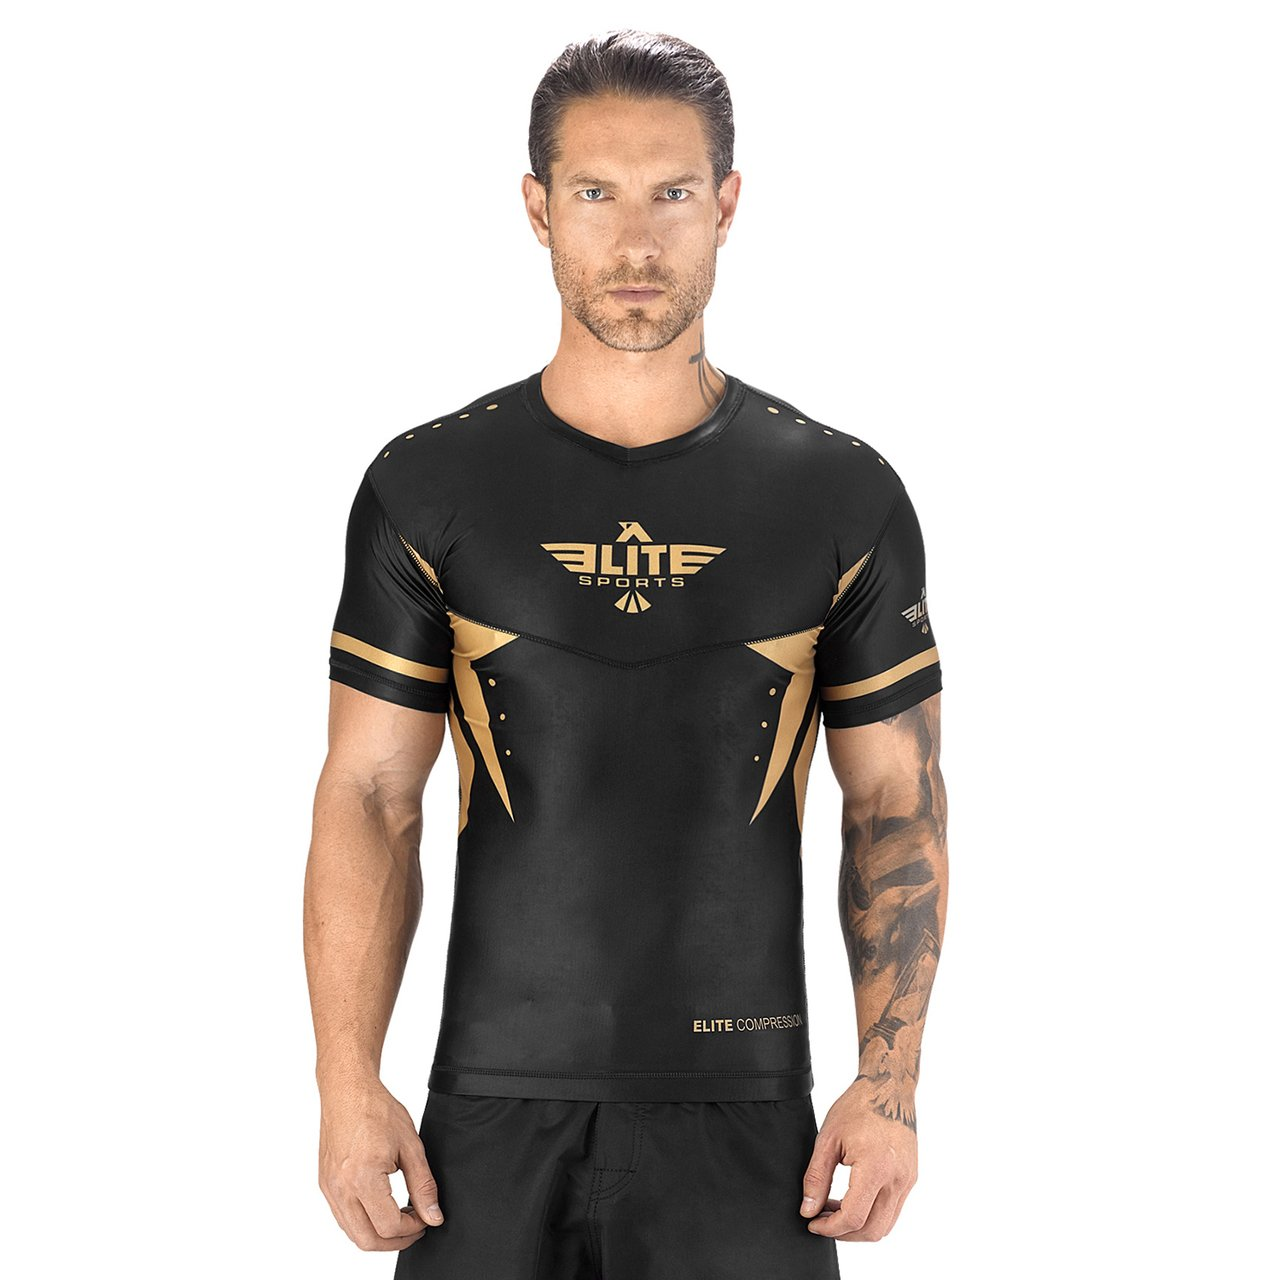 Elite Sports Star Series Sublimation Black/Gold Short Sleeve Wrestling Rash Guard